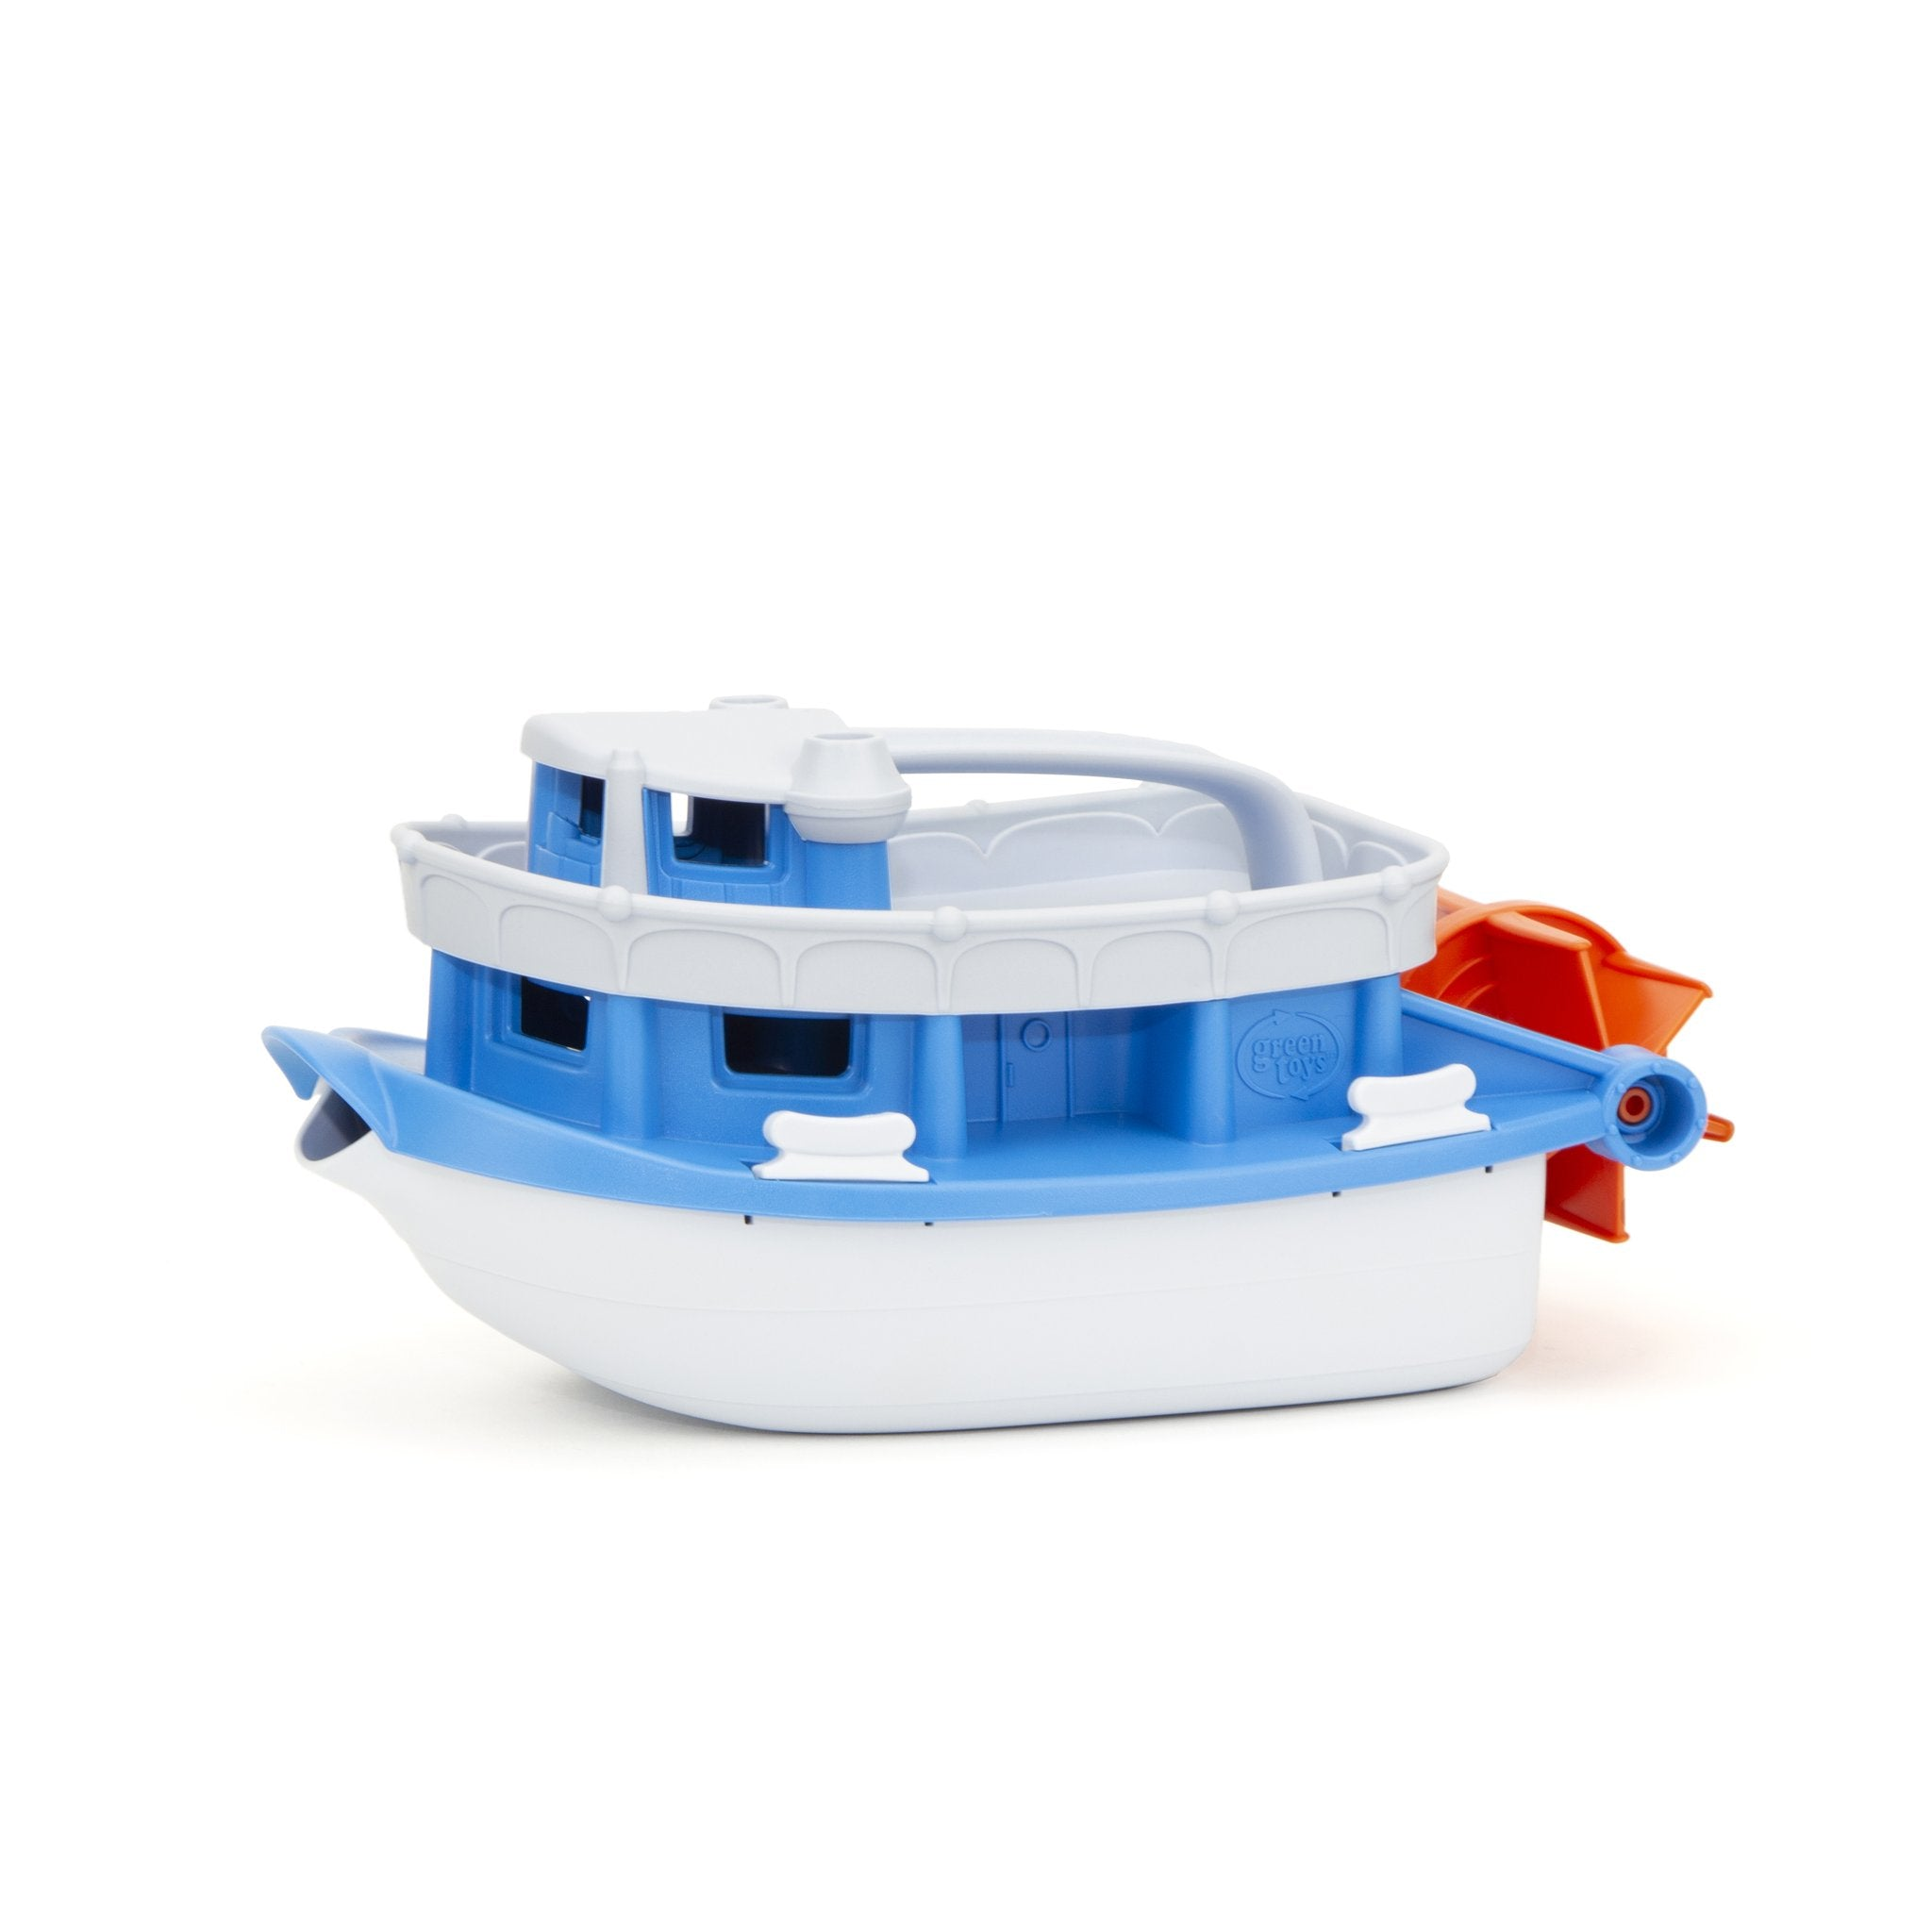 Green Toys Rescue Boat and Helicopter Bath and Water Toy 100/% Recycled BPA free